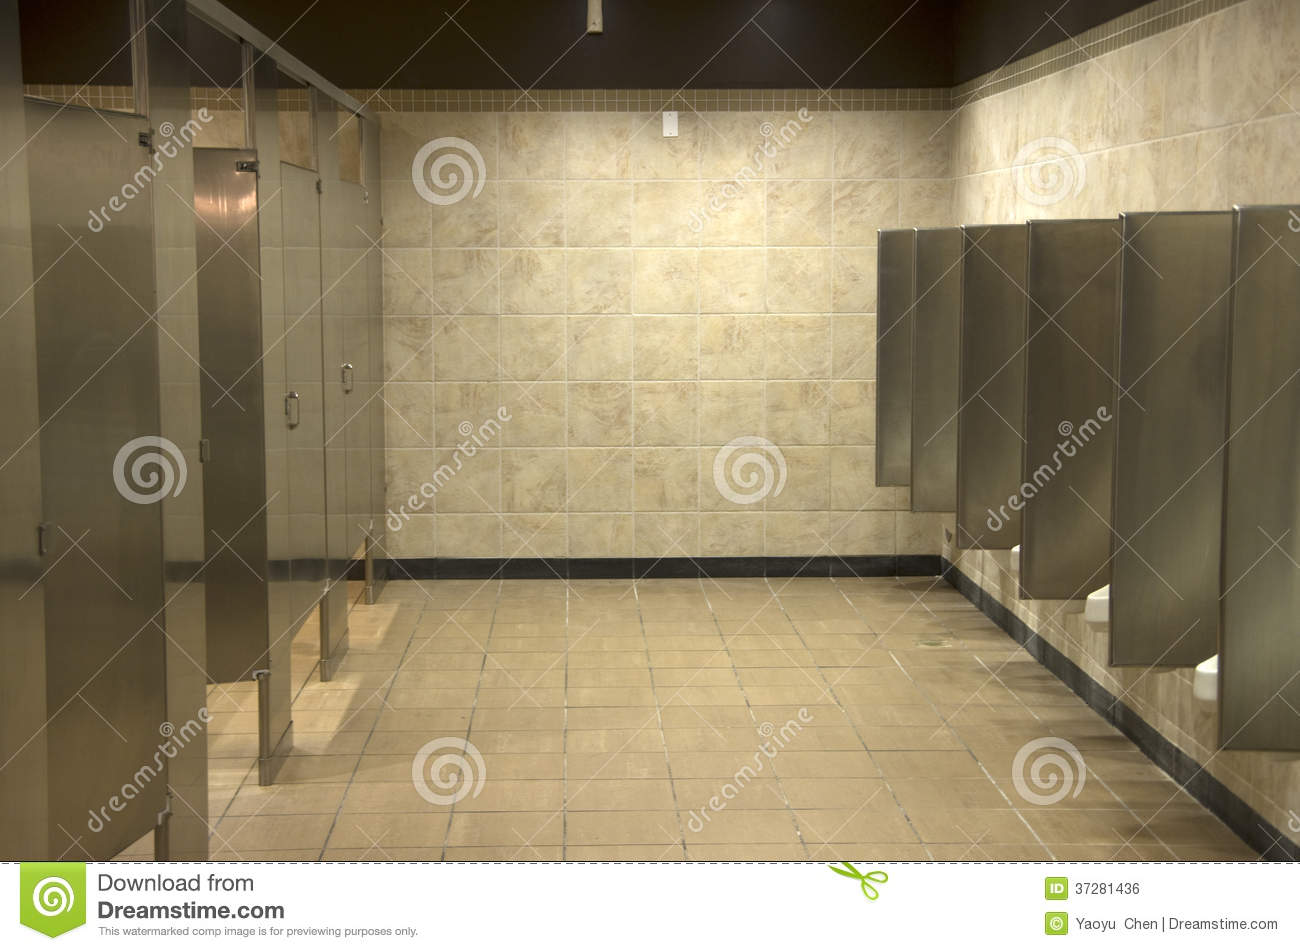 Clean And Simple Interiors Of A Bathroom In A Mall Mr No Pr No 3 362 5